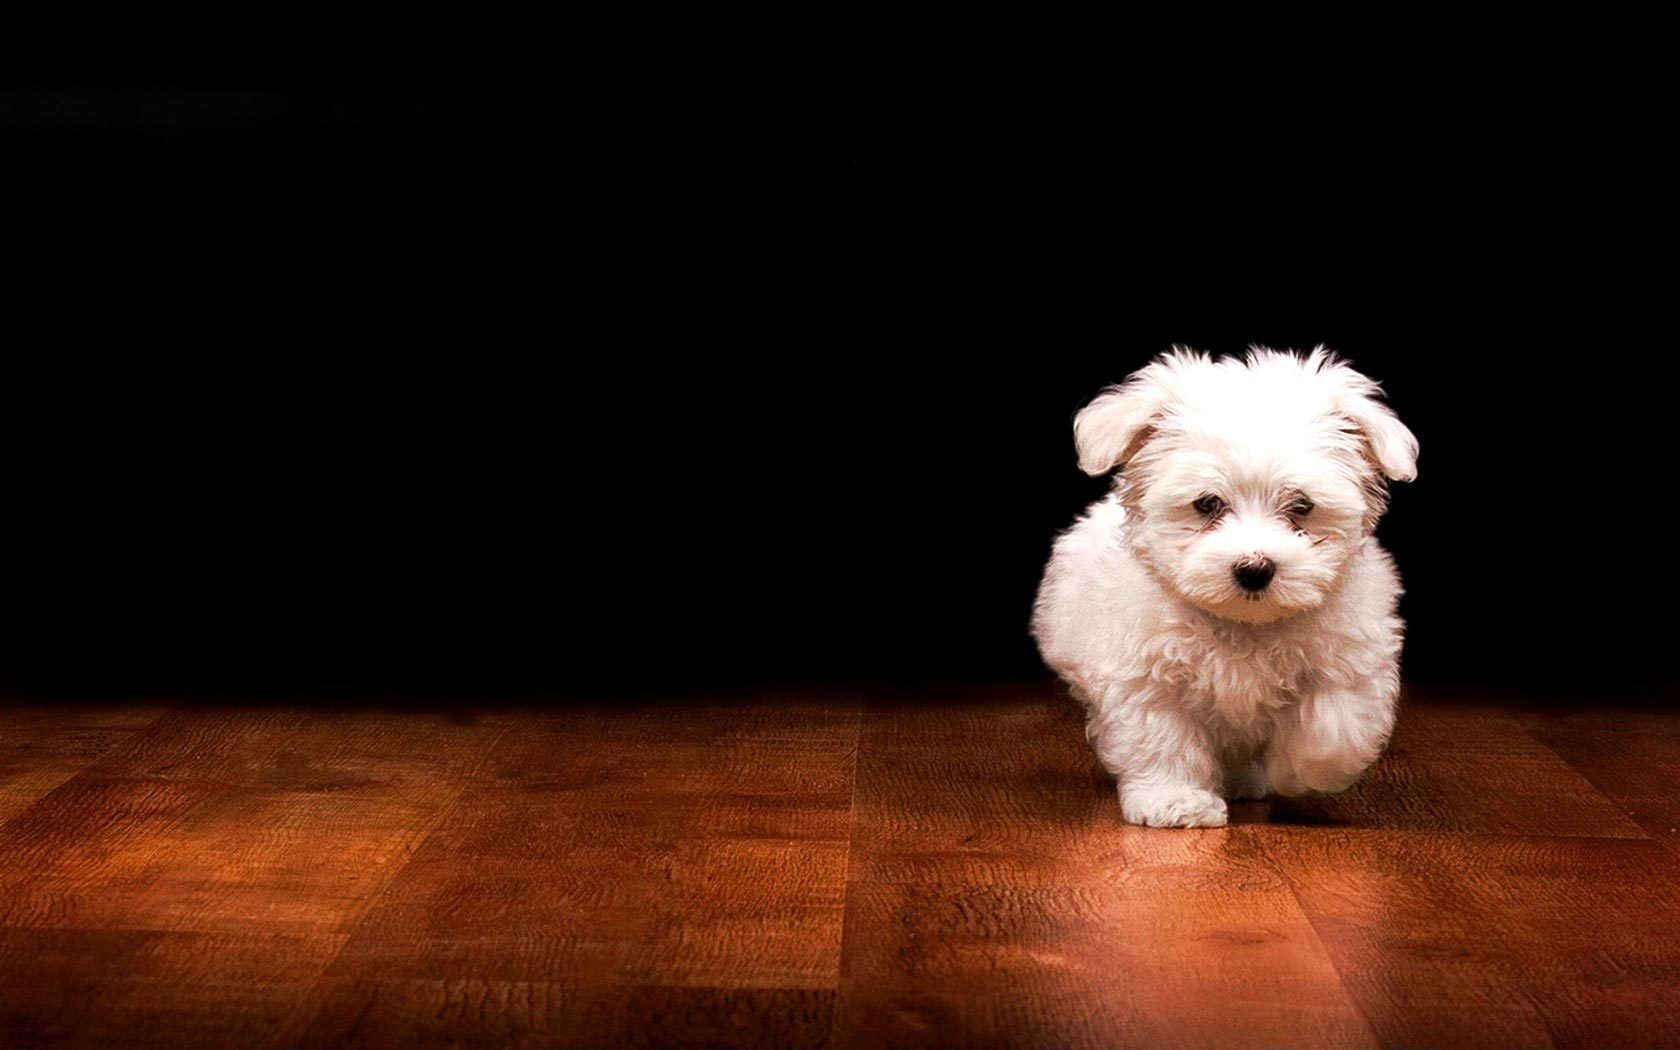 Wallpaper With Images Puppy Wallpaper Puppy Backgrounds Dog Wallpaper